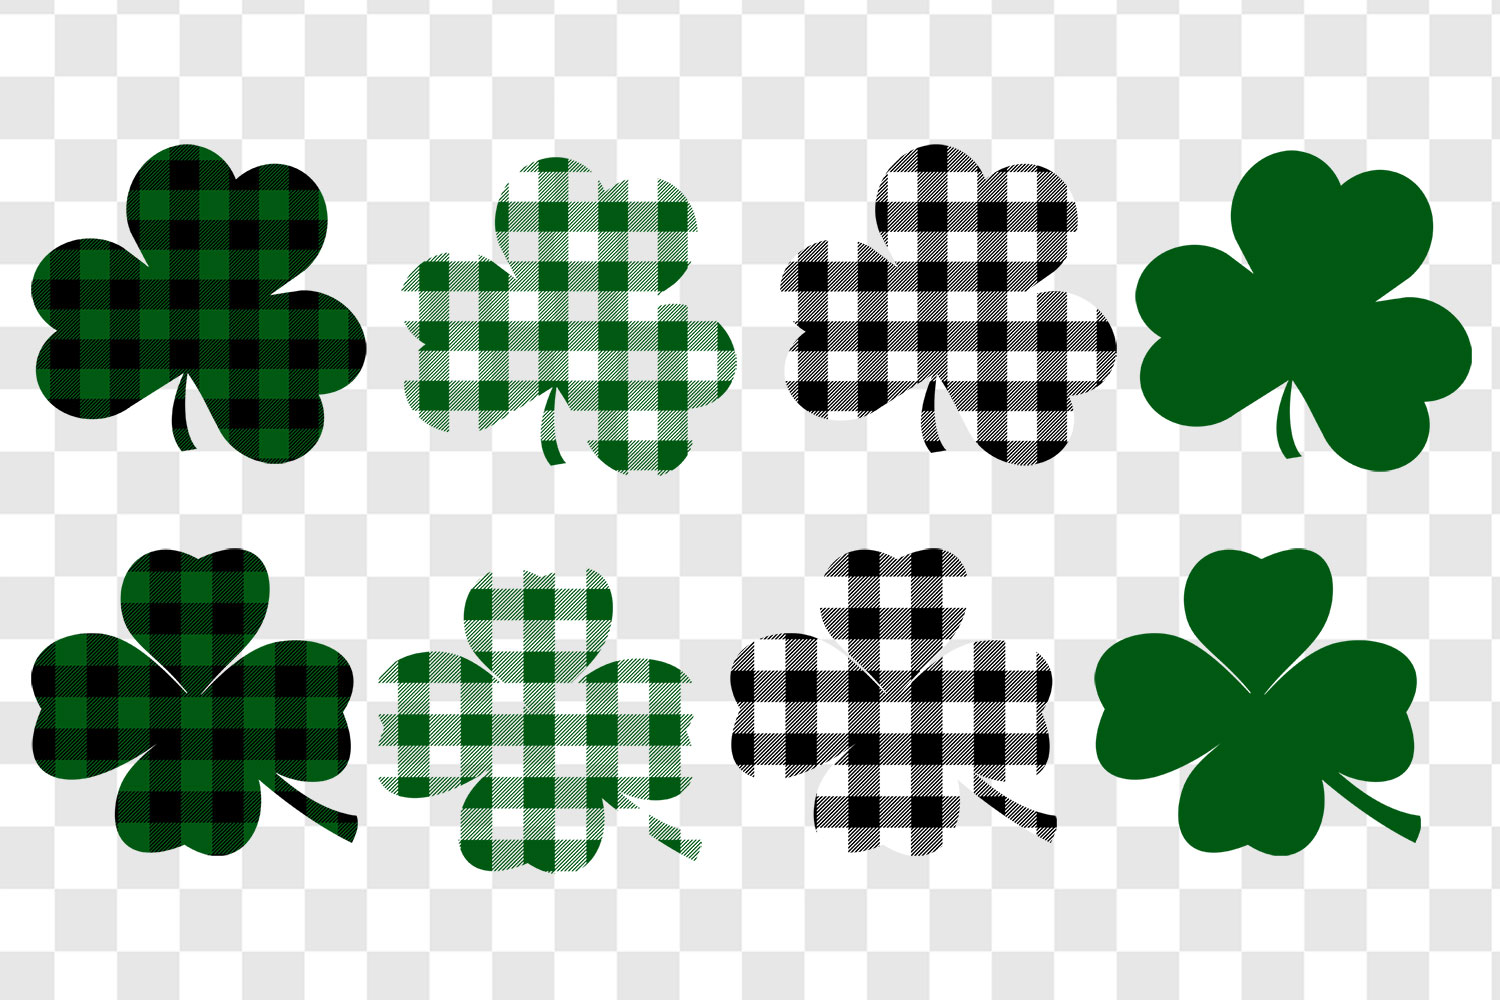 Buffalo Check St. Patrick's Day Shamrocks and Clovers example image 2